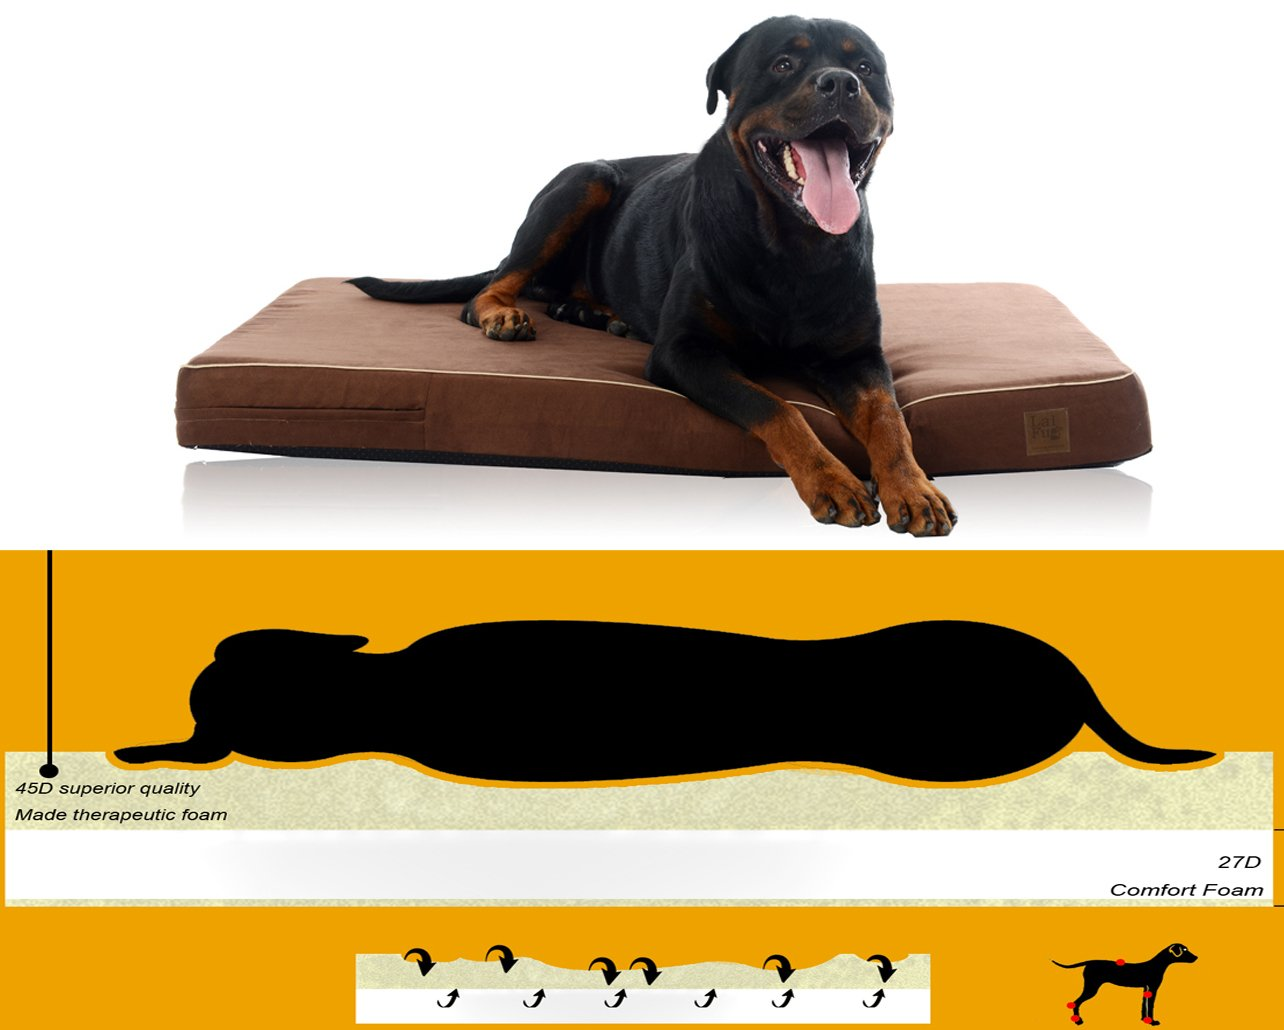 Laifug Orthopedic Memory Foam Pet/Dog Bed (Medium34''x22''x4'', Chocolate) with Durable Water Proof Liner and Removable Designer Washable Cover